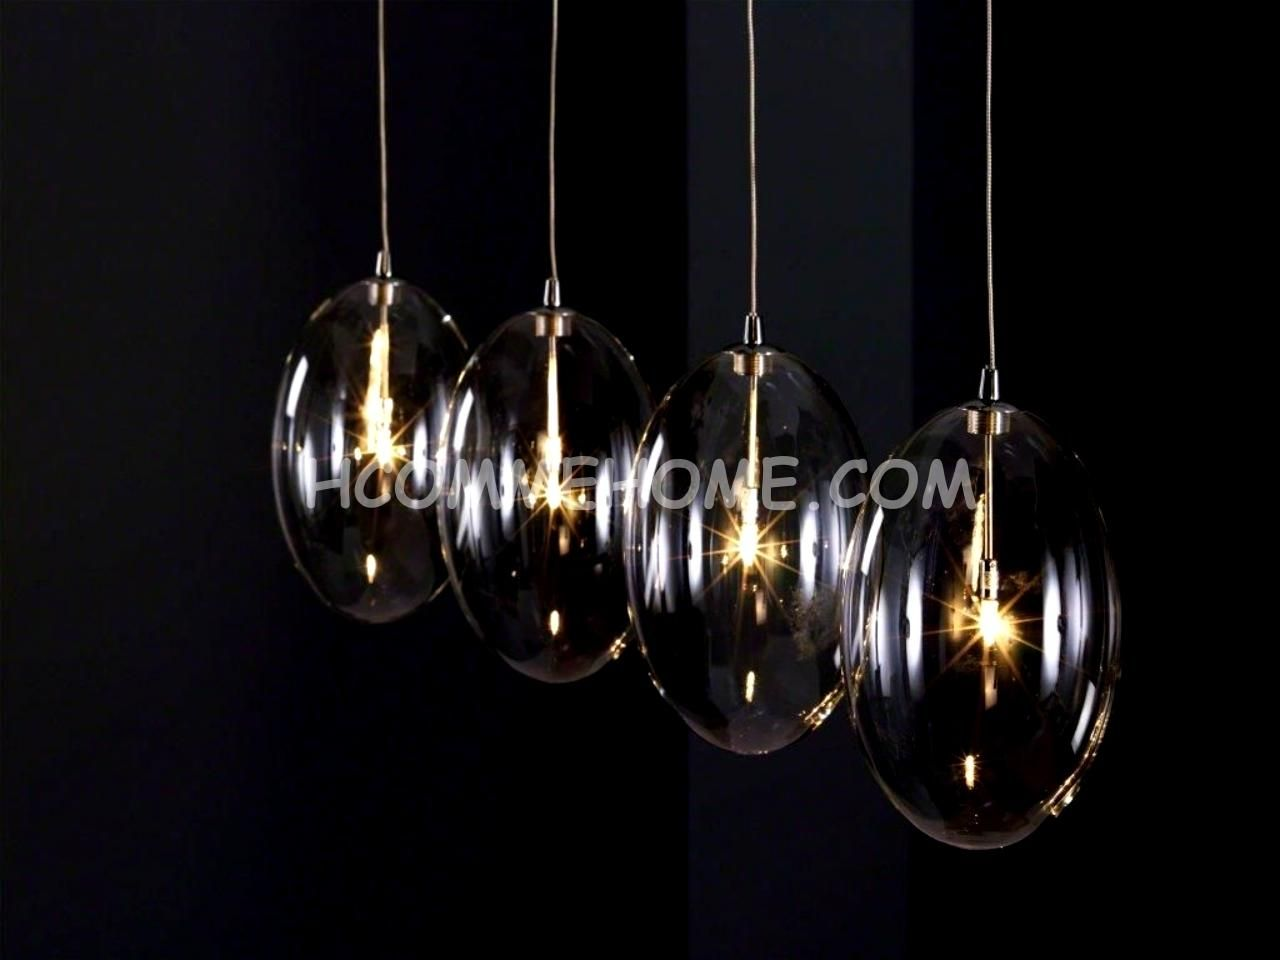 luminaire suspension design en verre kalo luminaires design hcommehome luminaires. Black Bedroom Furniture Sets. Home Design Ideas